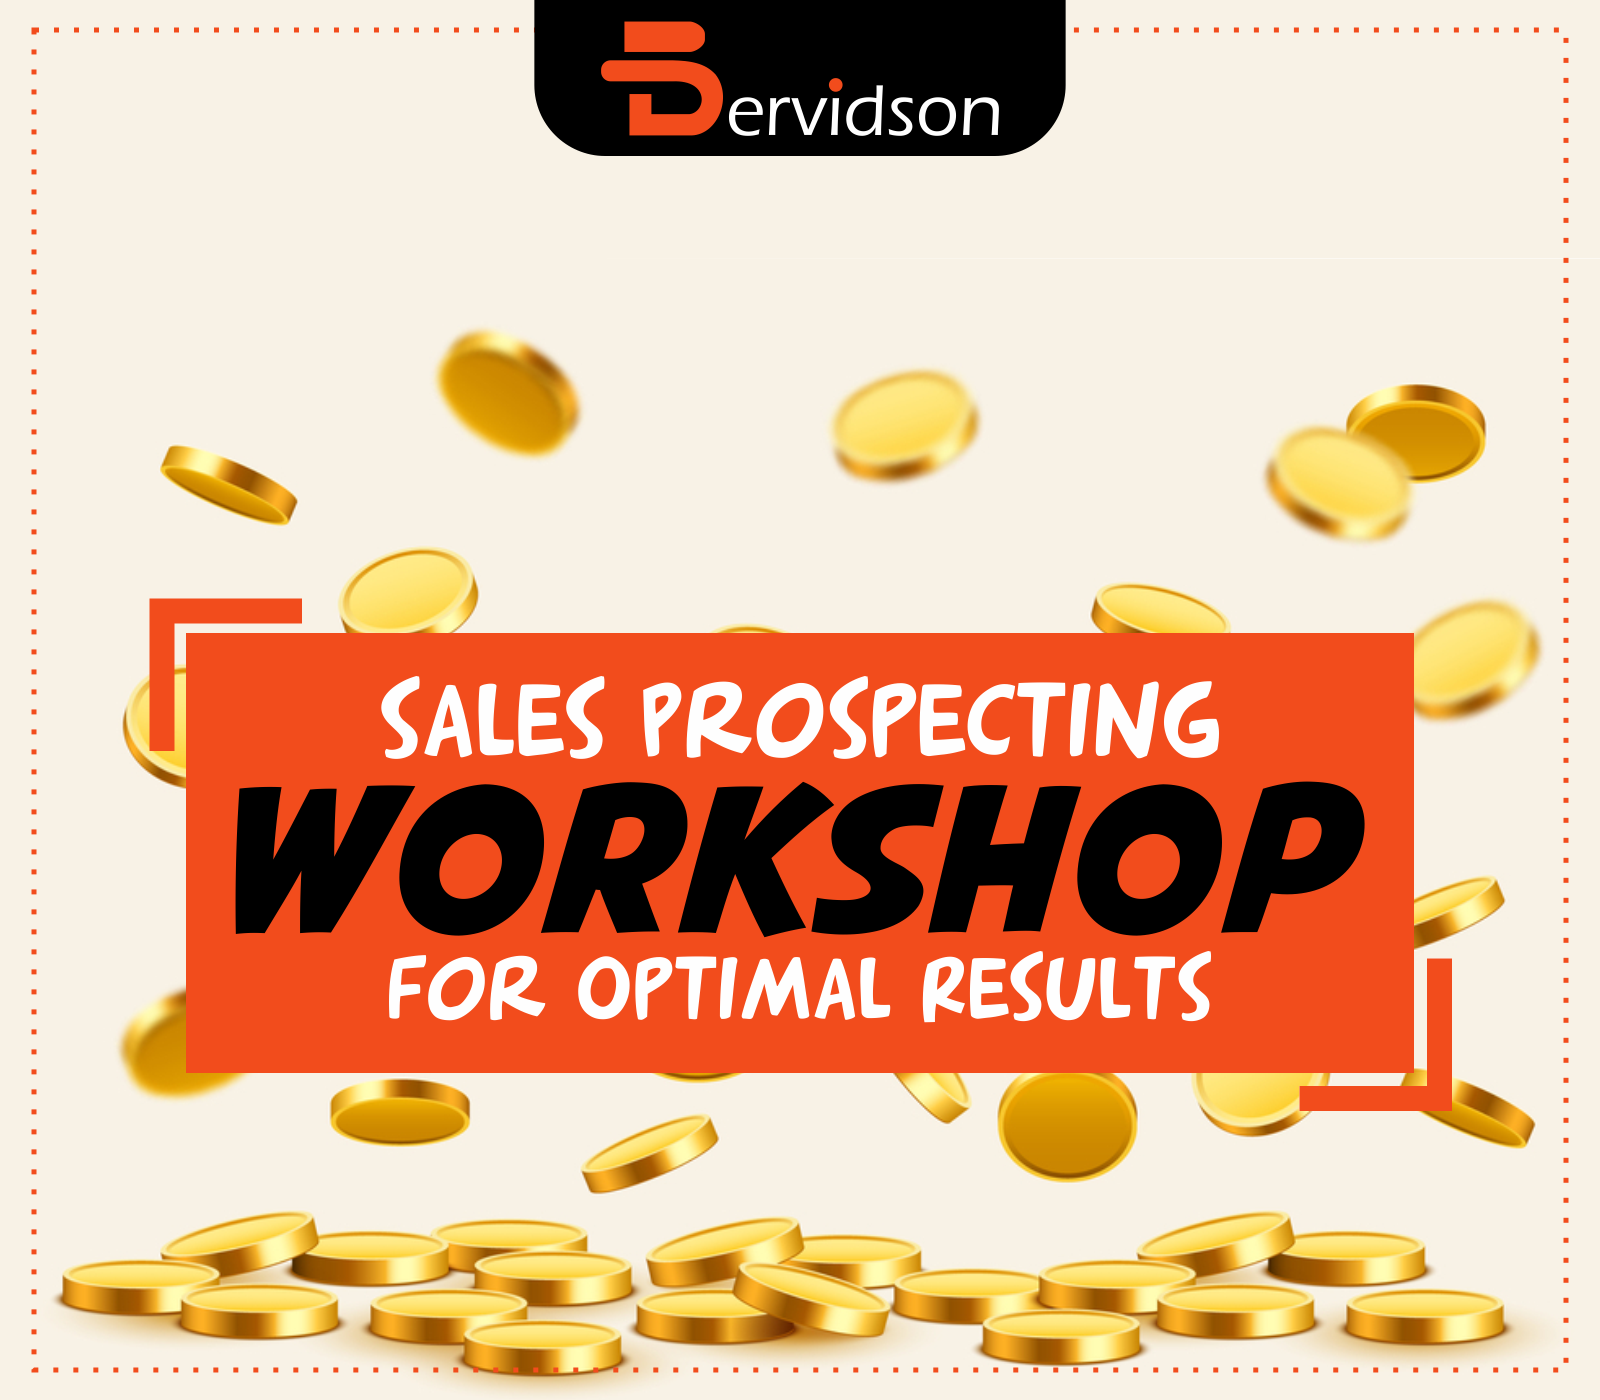 Sales Prospecting for Optimal Results